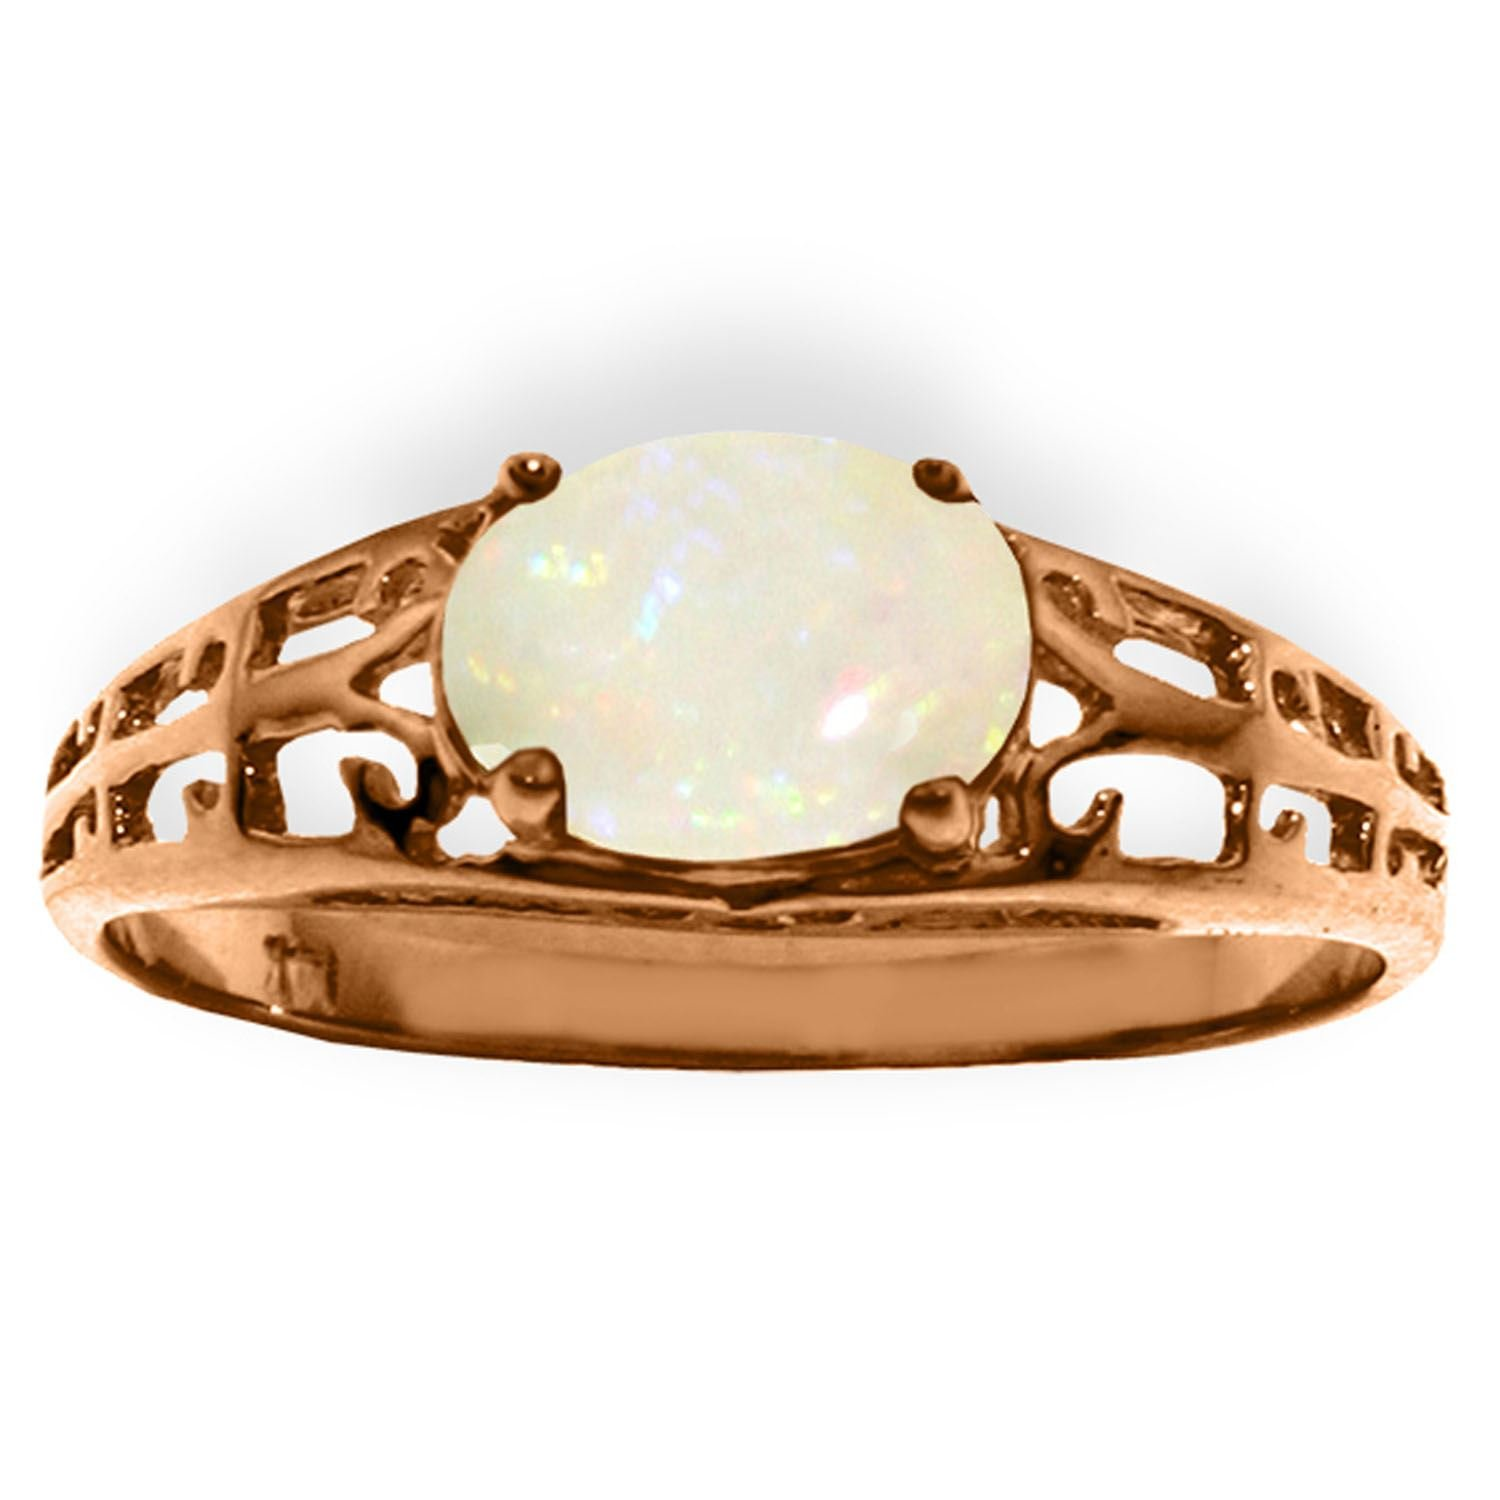 ALARRI 14K Solid Rose Gold Filigree Ring w/ Natural Opal With Ring Size 10 by ALARRI (Image #2)